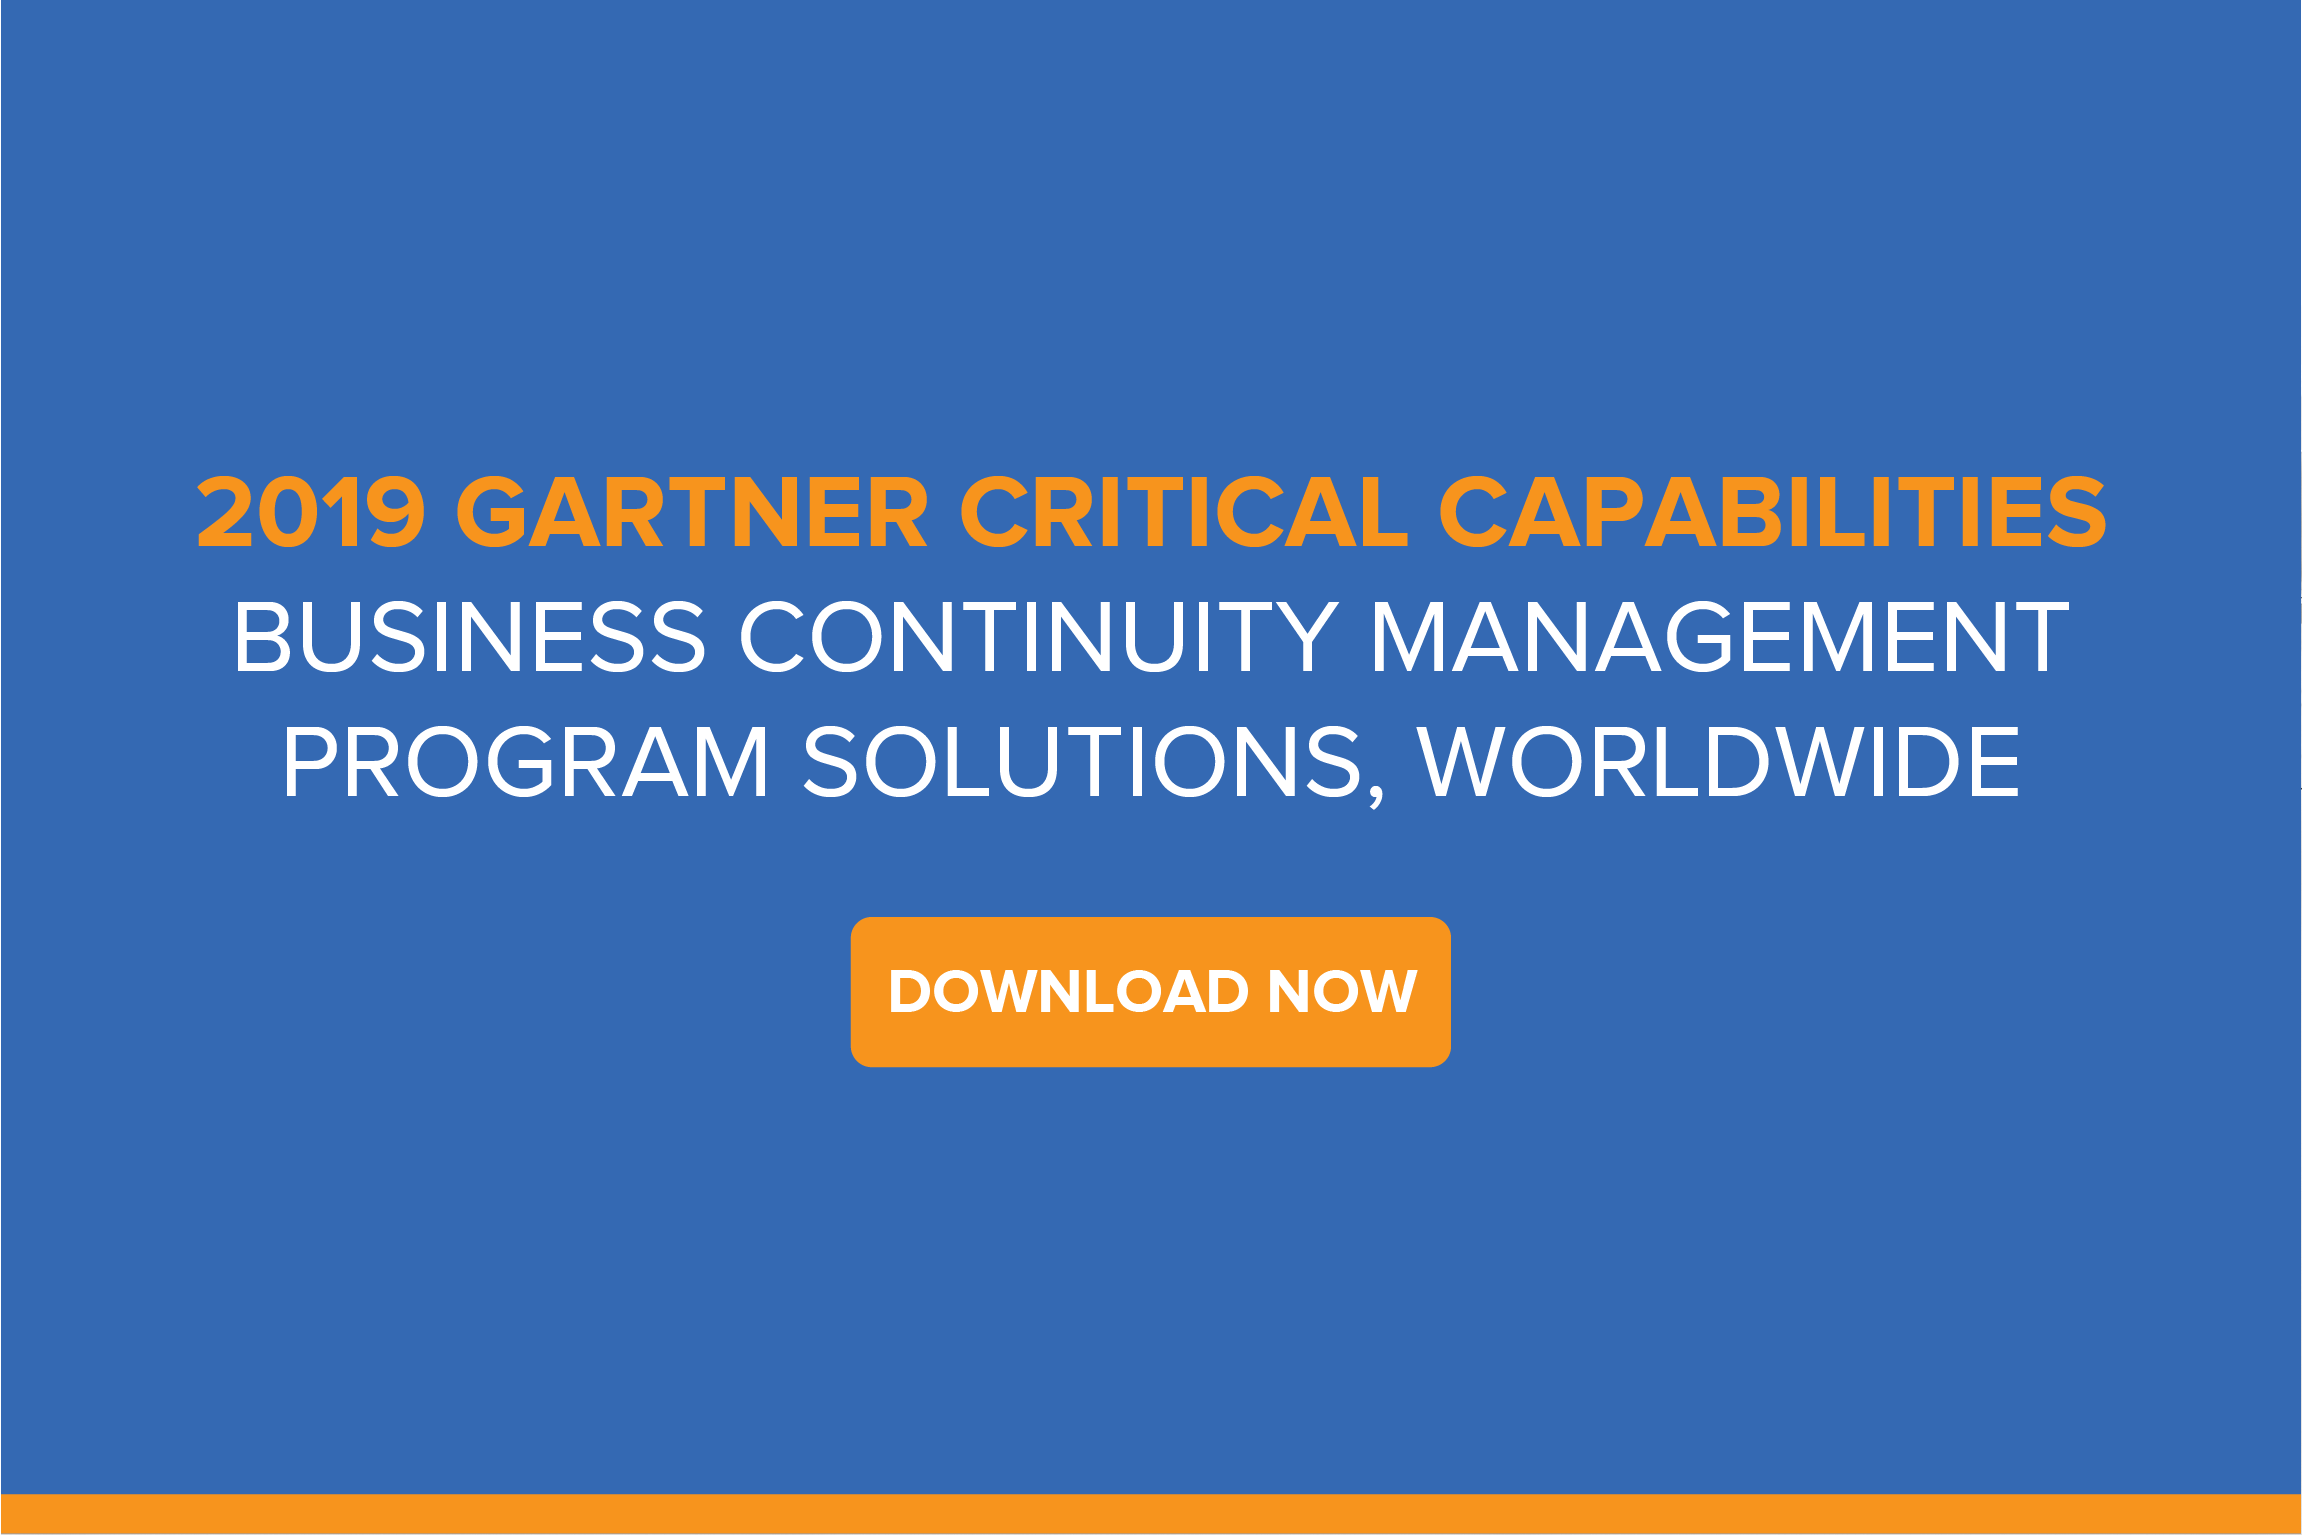 2019 Gartner Critical Capabilities for BCM Program Solutions, Worldwide